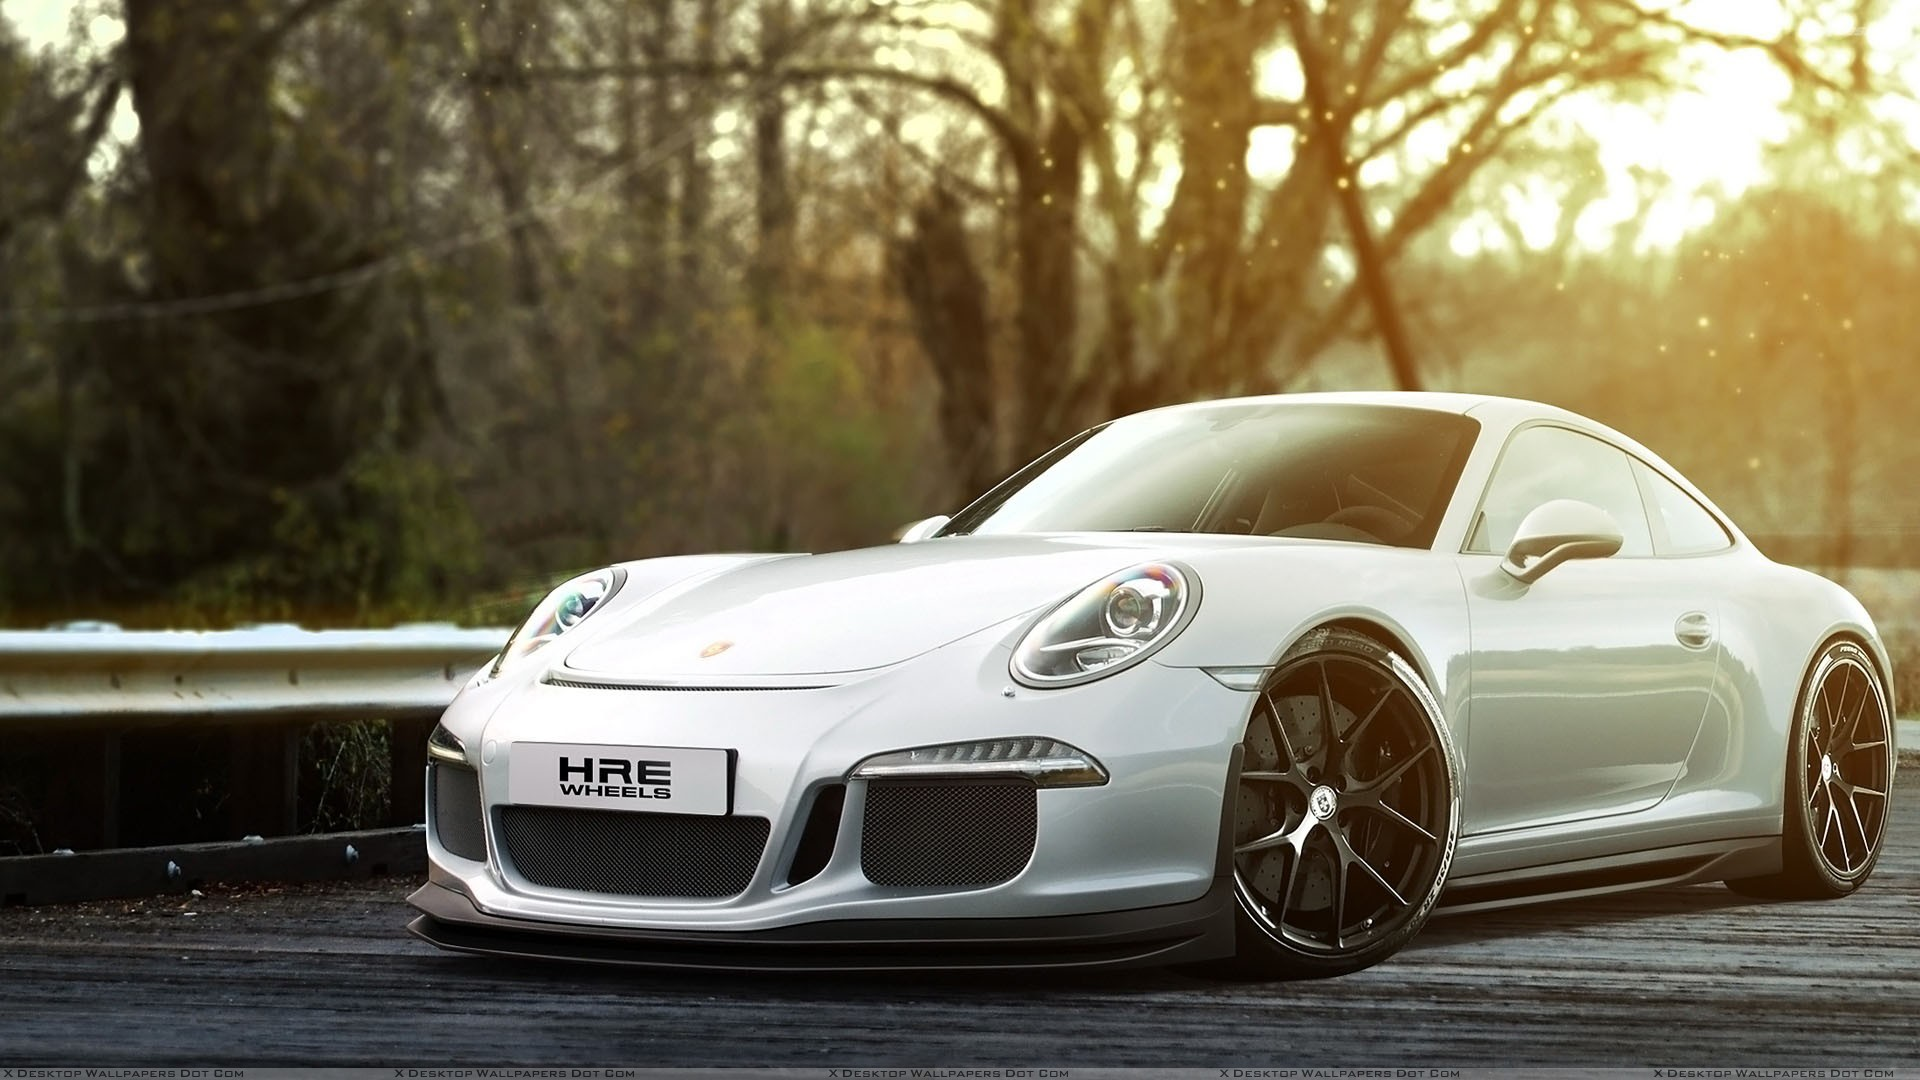 Porsche Wallpapers Photos Amp Images In Hd